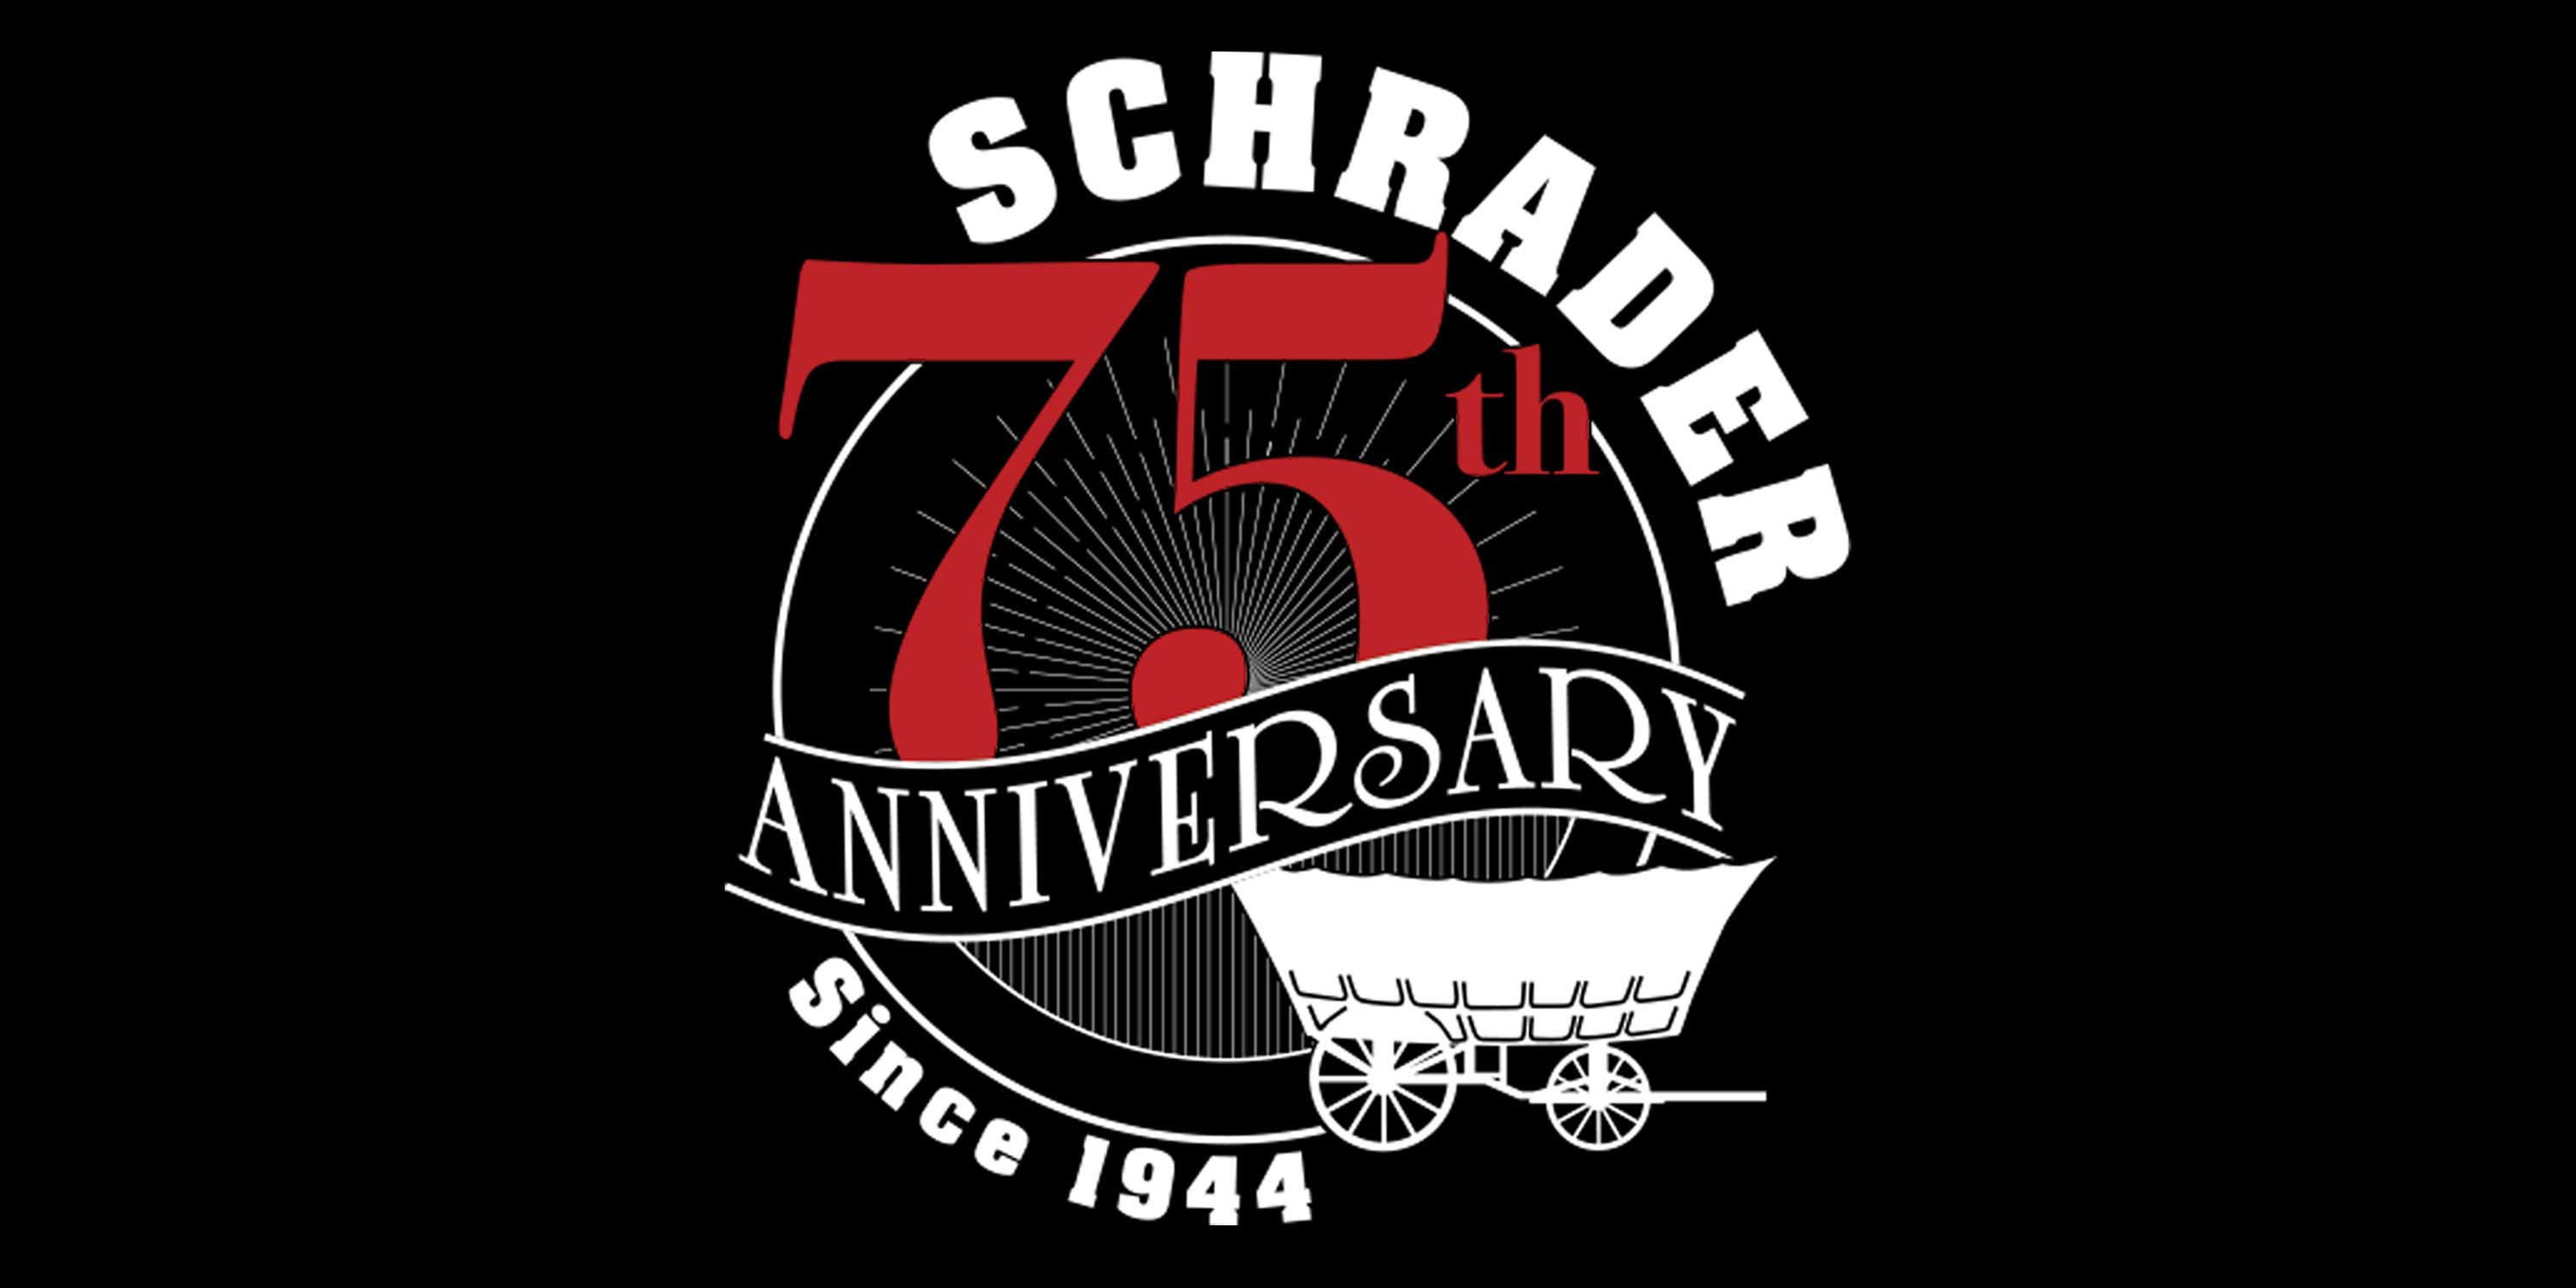 Celebrating our 75th Anniversary in 2019